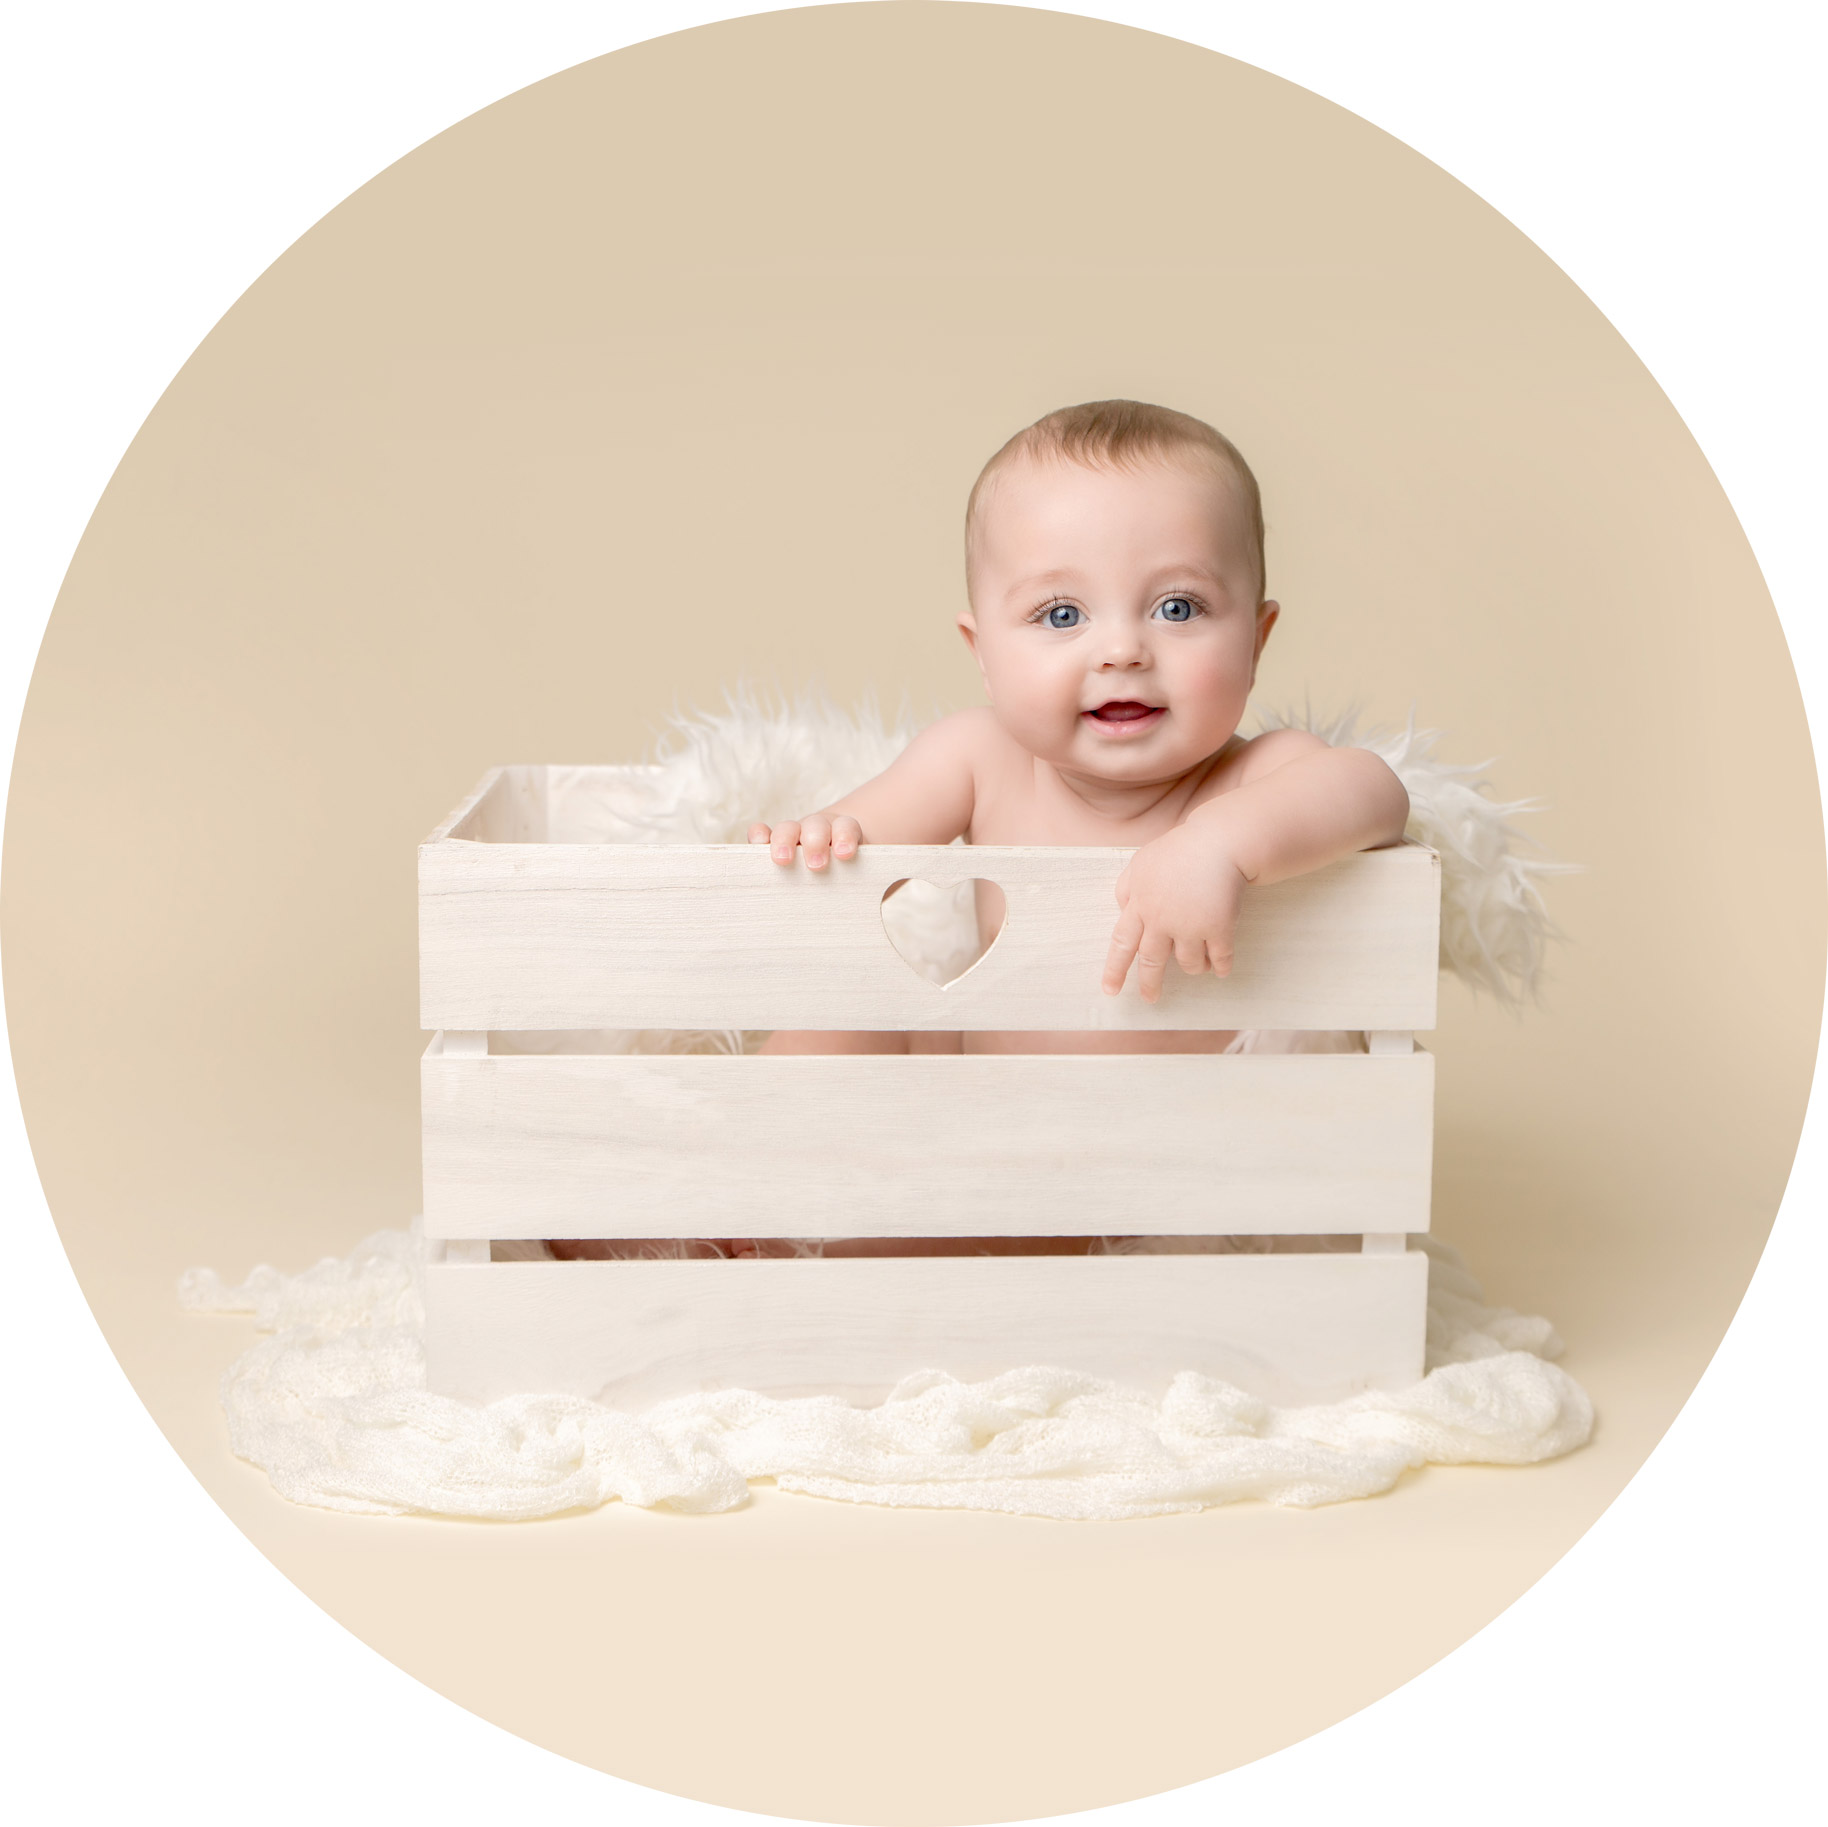 6 month old baby boy sitting in a white crate, smiling.